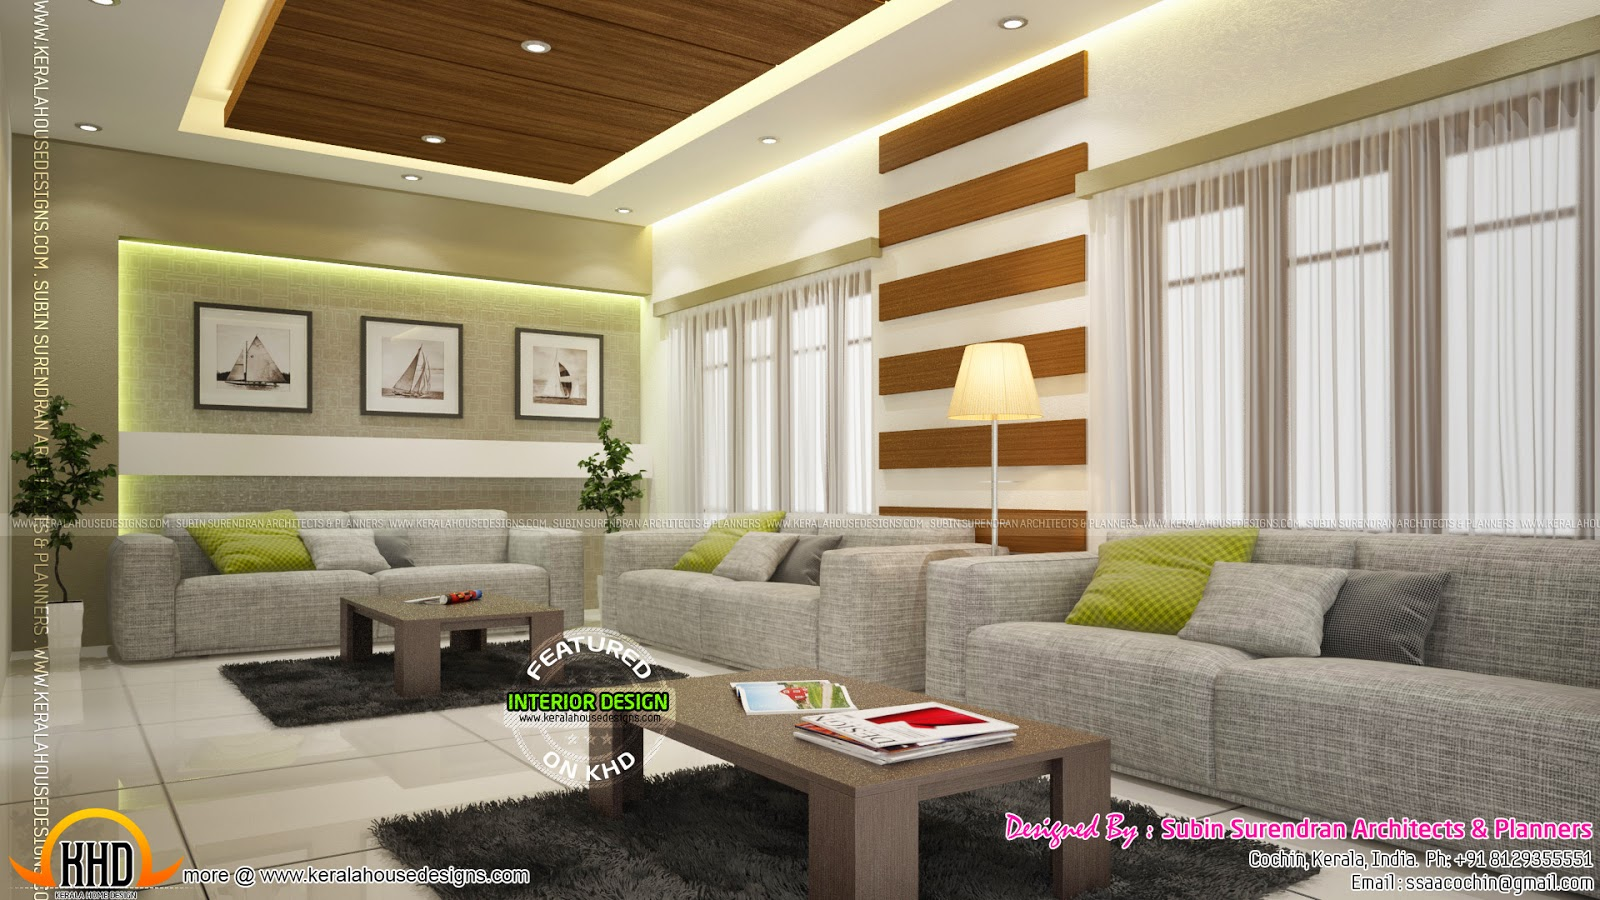 News and article online - Design house decor ...